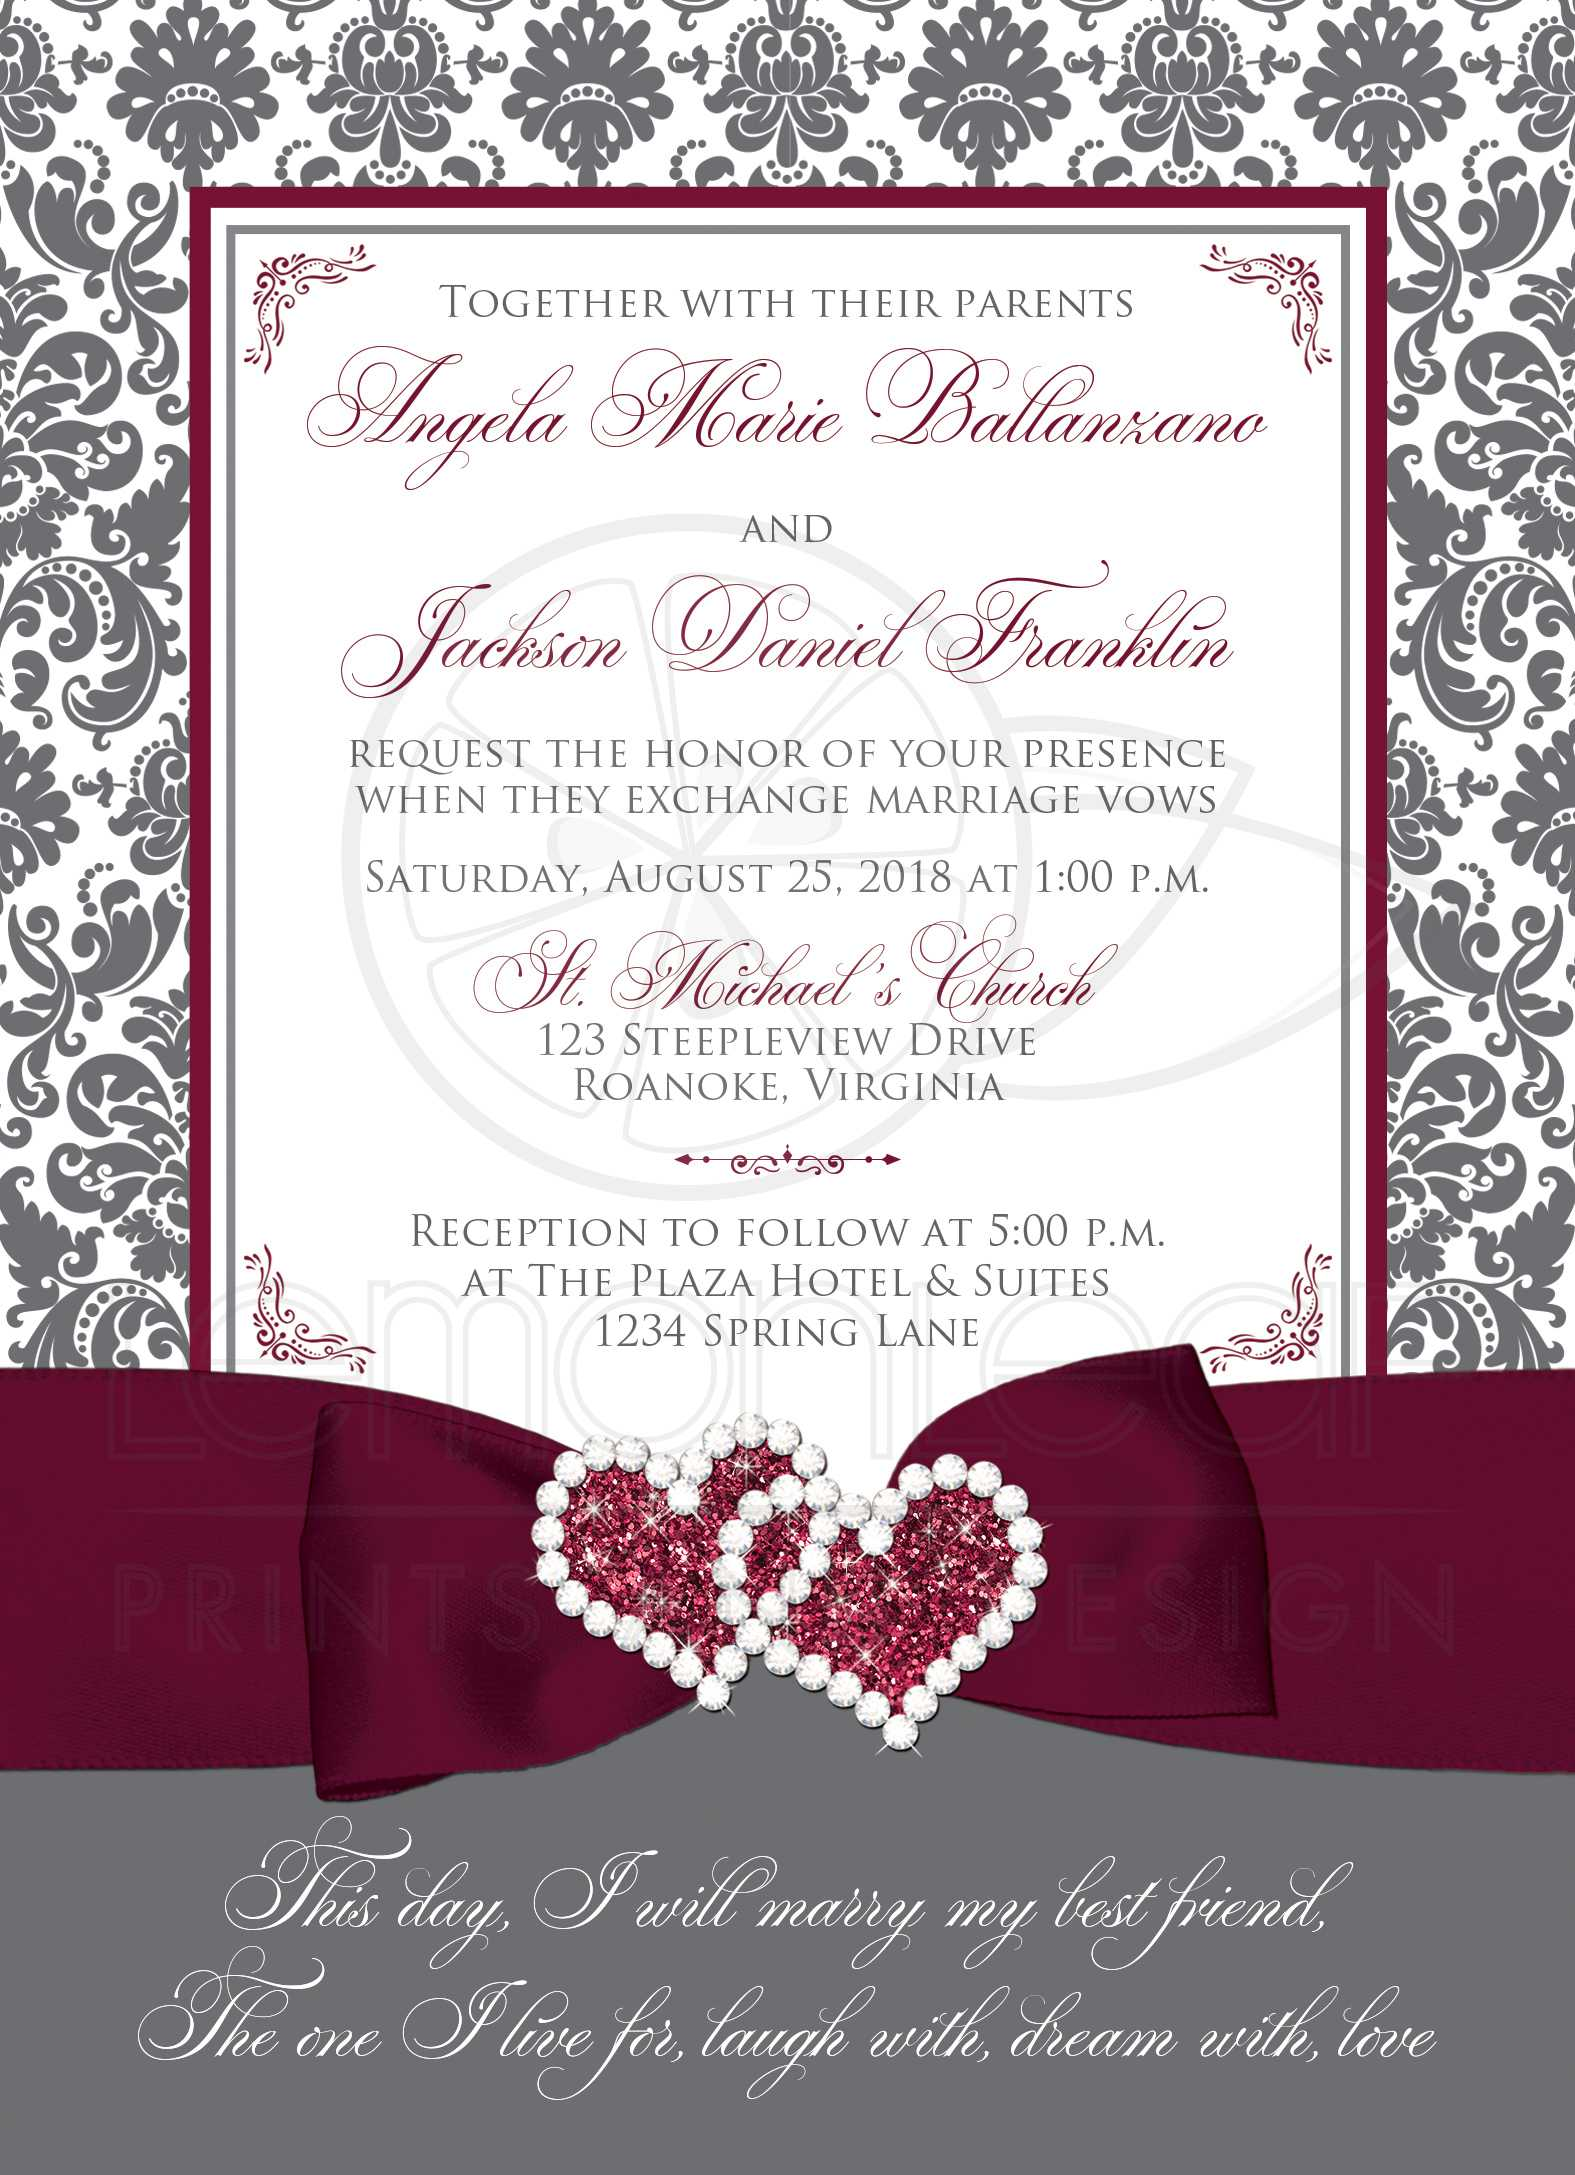 Gray, White Damask Wedding Invitation, PRINTED ON Burgundy Accents